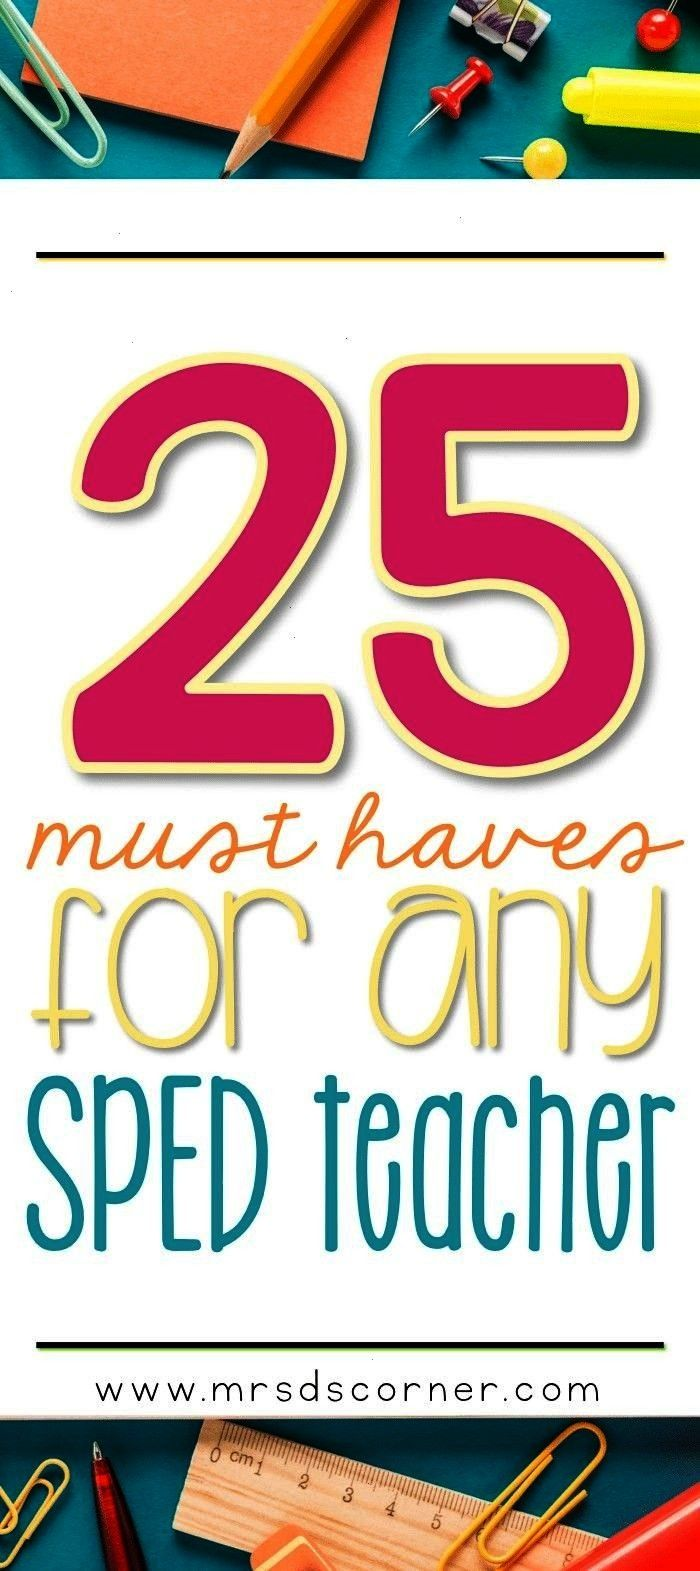 education teacher, there are a lot of things we need. But this is a list of 25 things that we MUST